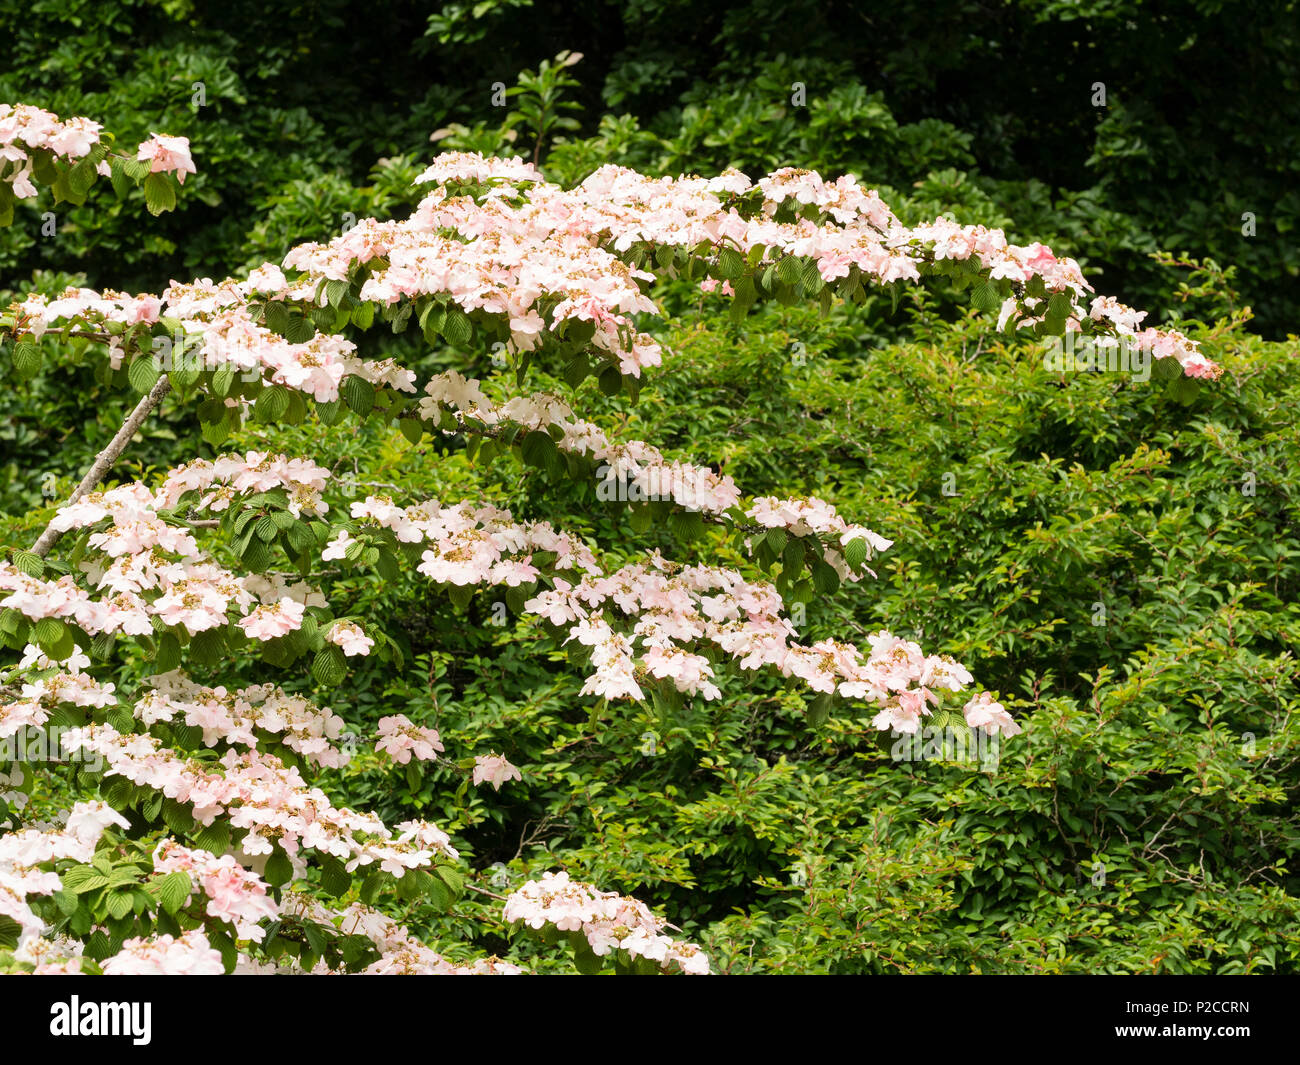 Delicate pink lacecap flowers arranged on tiered, slightly arching branches of the hardy shrub, Viburnum plicatum 'Pink Beauty' - Stock Image